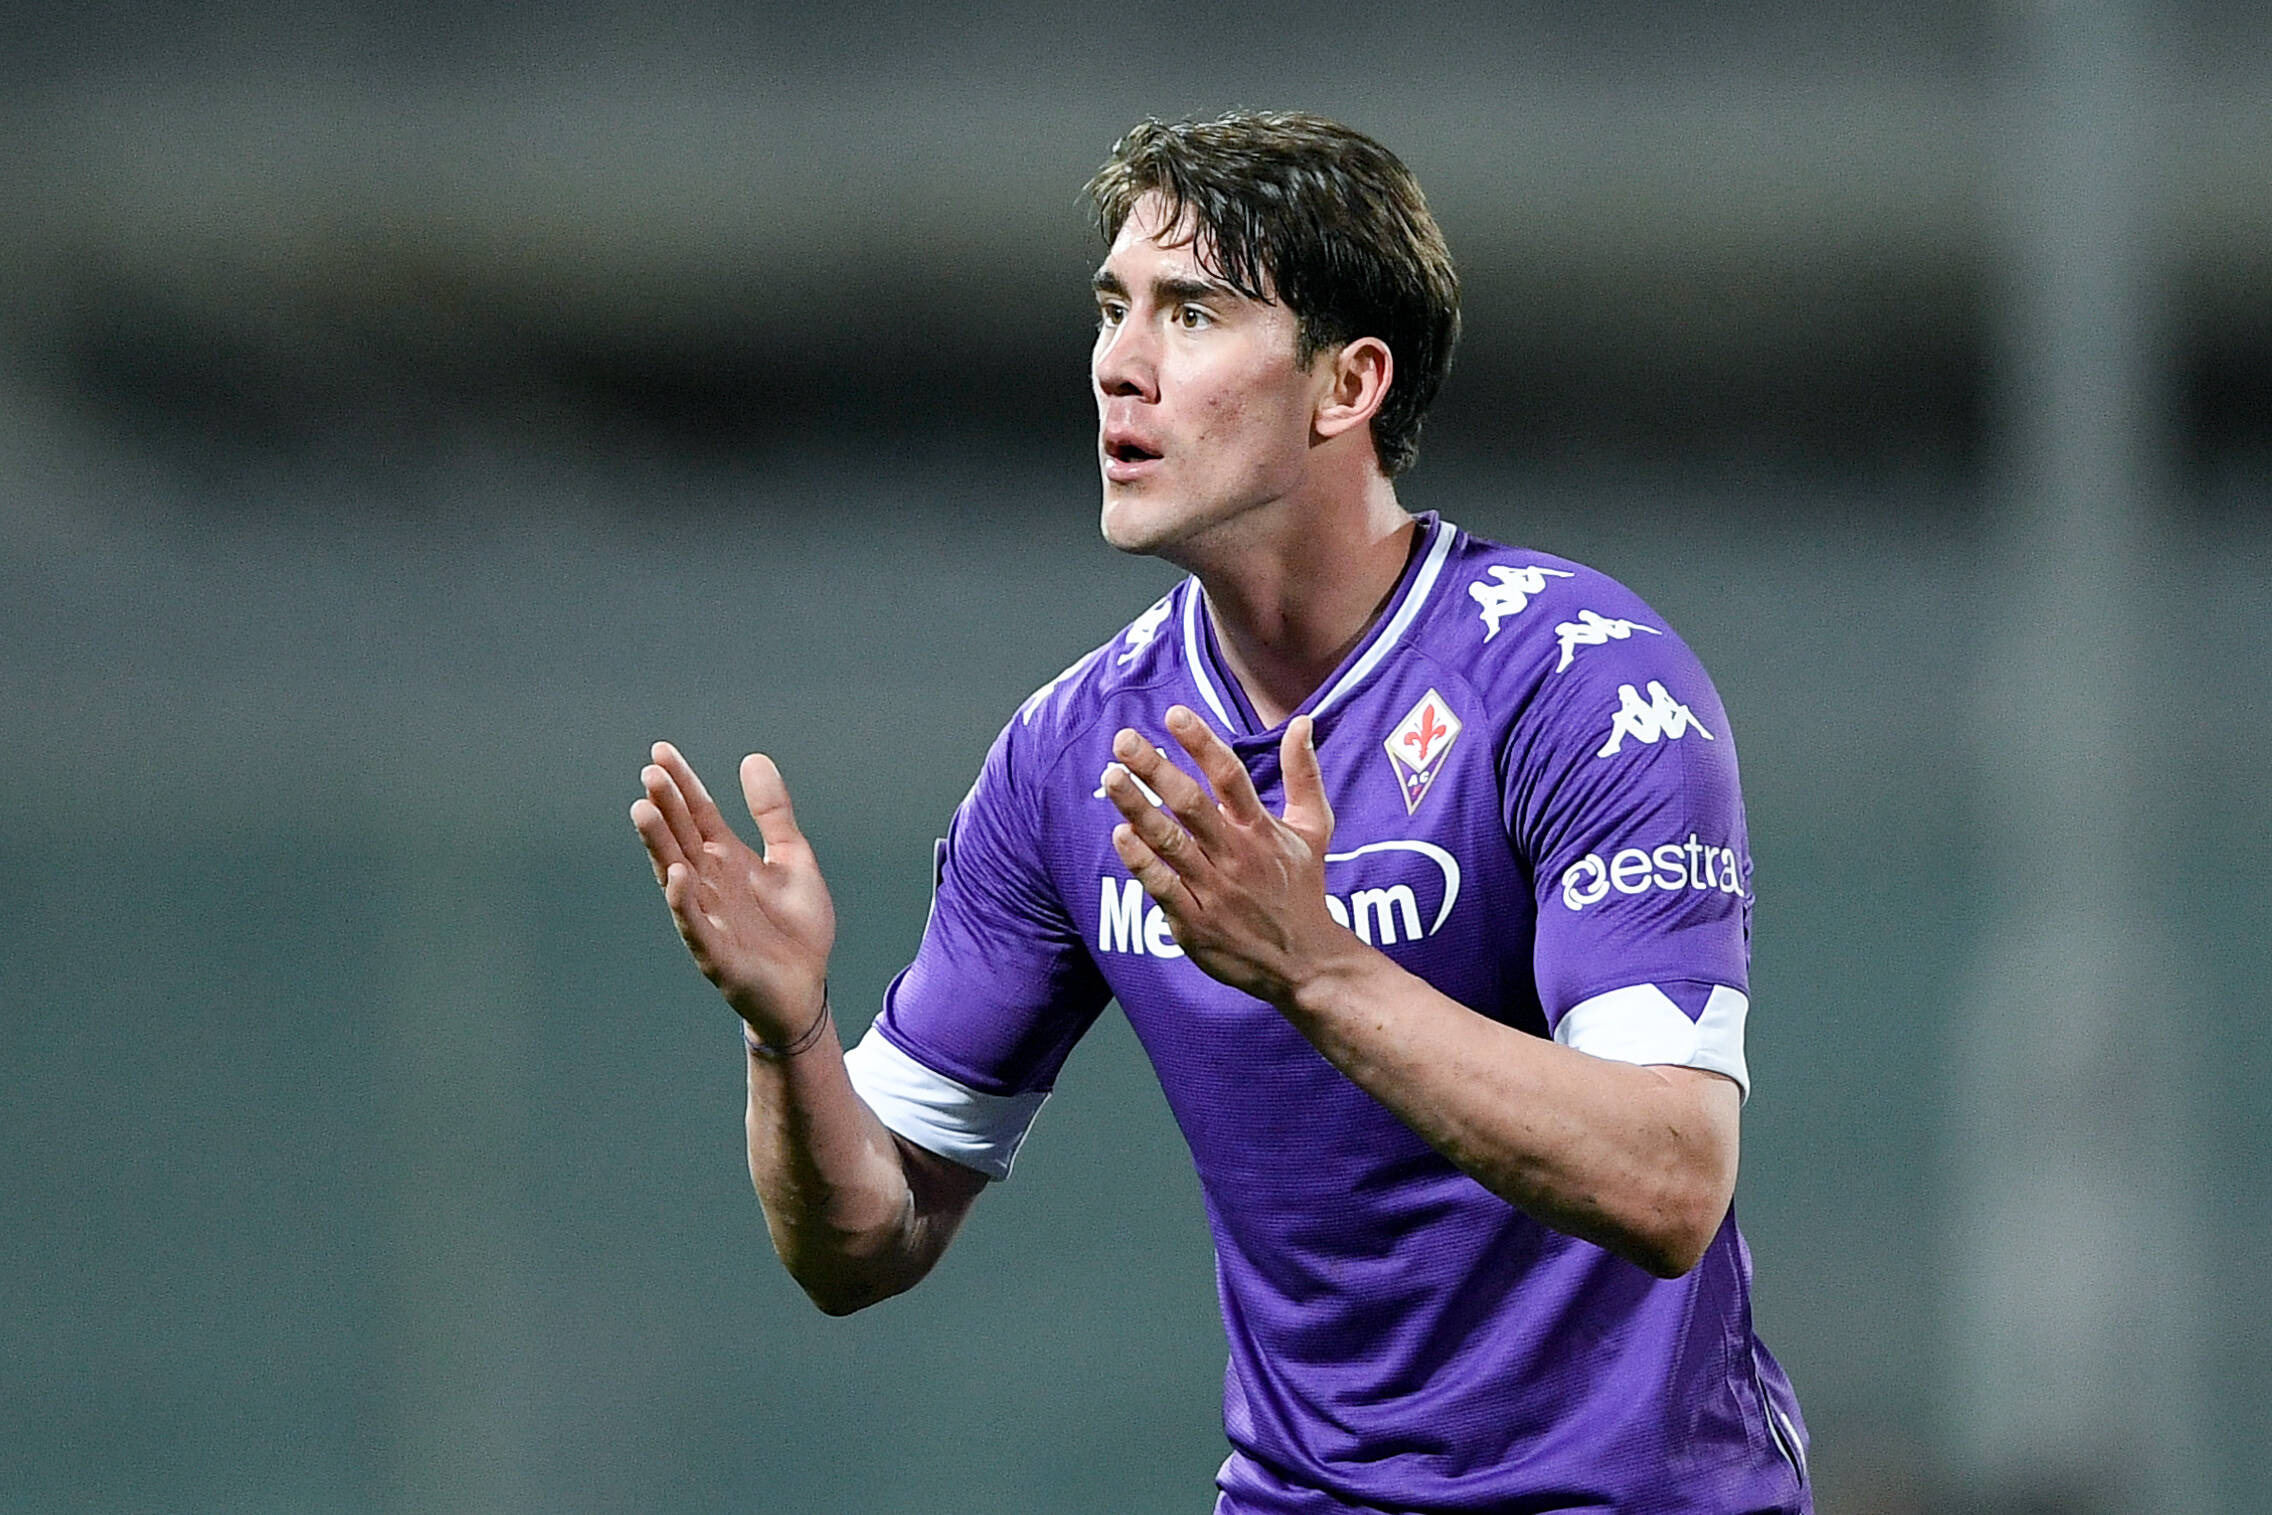 Dusan Vlahovic of Fiorentina is linked with a transfer to Liverpool, Real Madrid, and Manchester United.